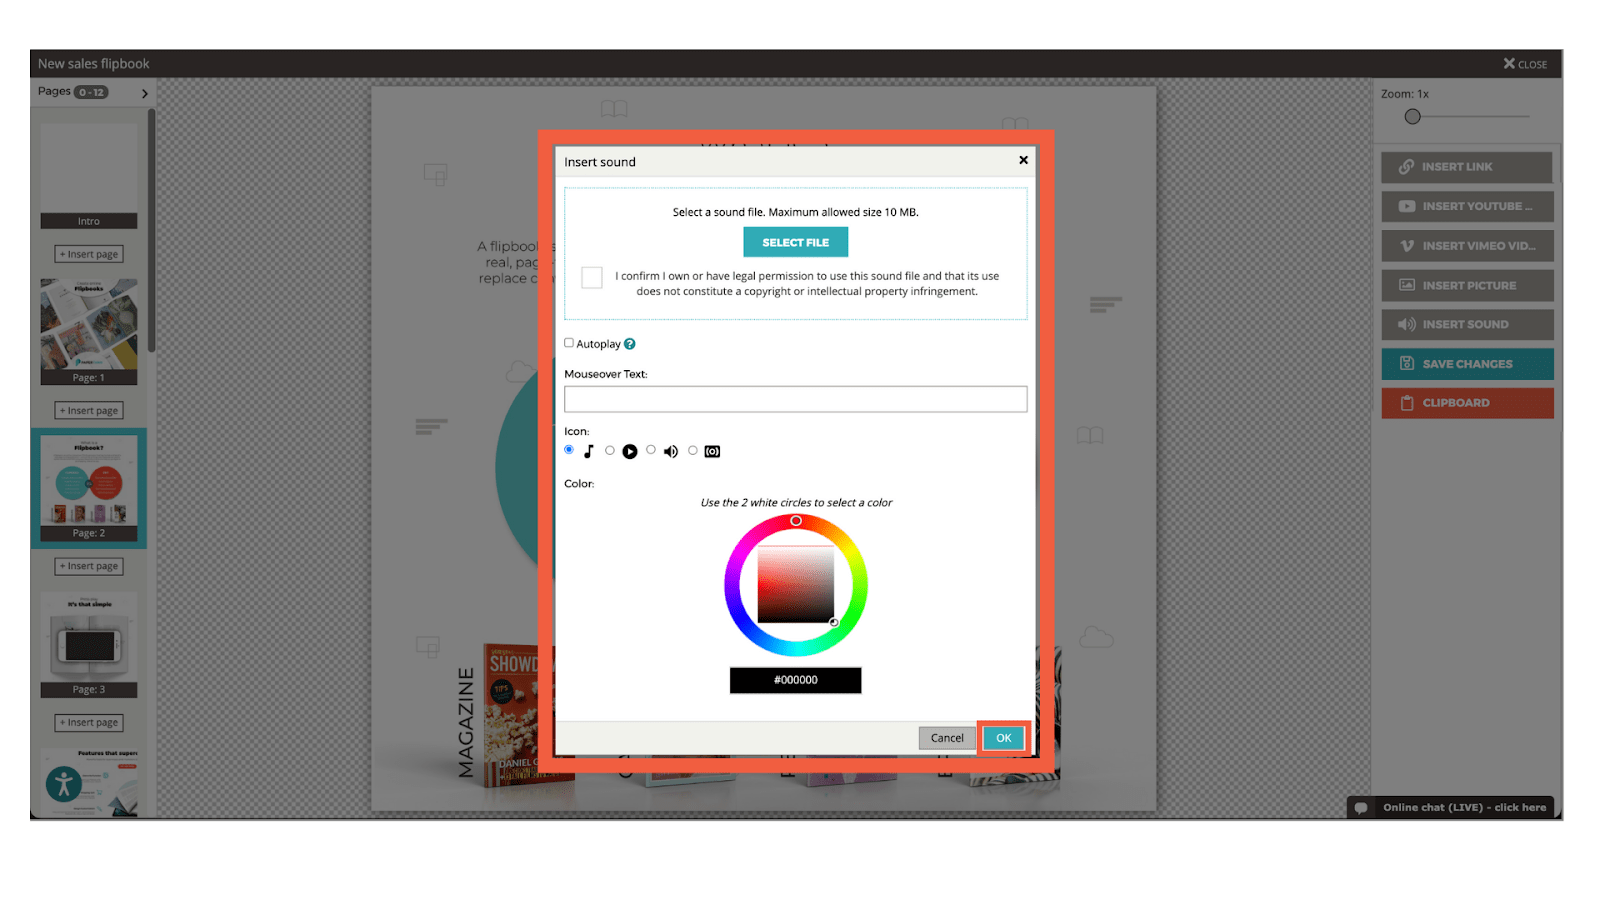 Screenshot showing the various options when adding sounds into the flipbook (select .mp3 file, icon